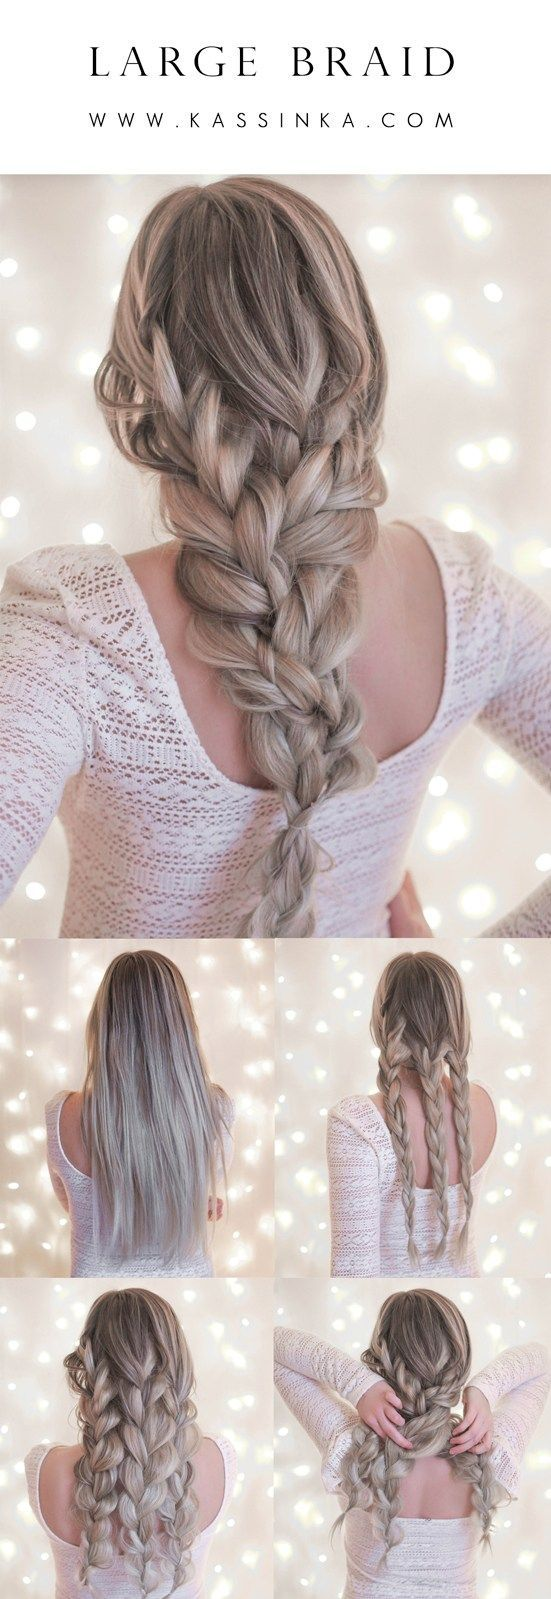 Photo of Große Braid Hair Tutorial Kassinka